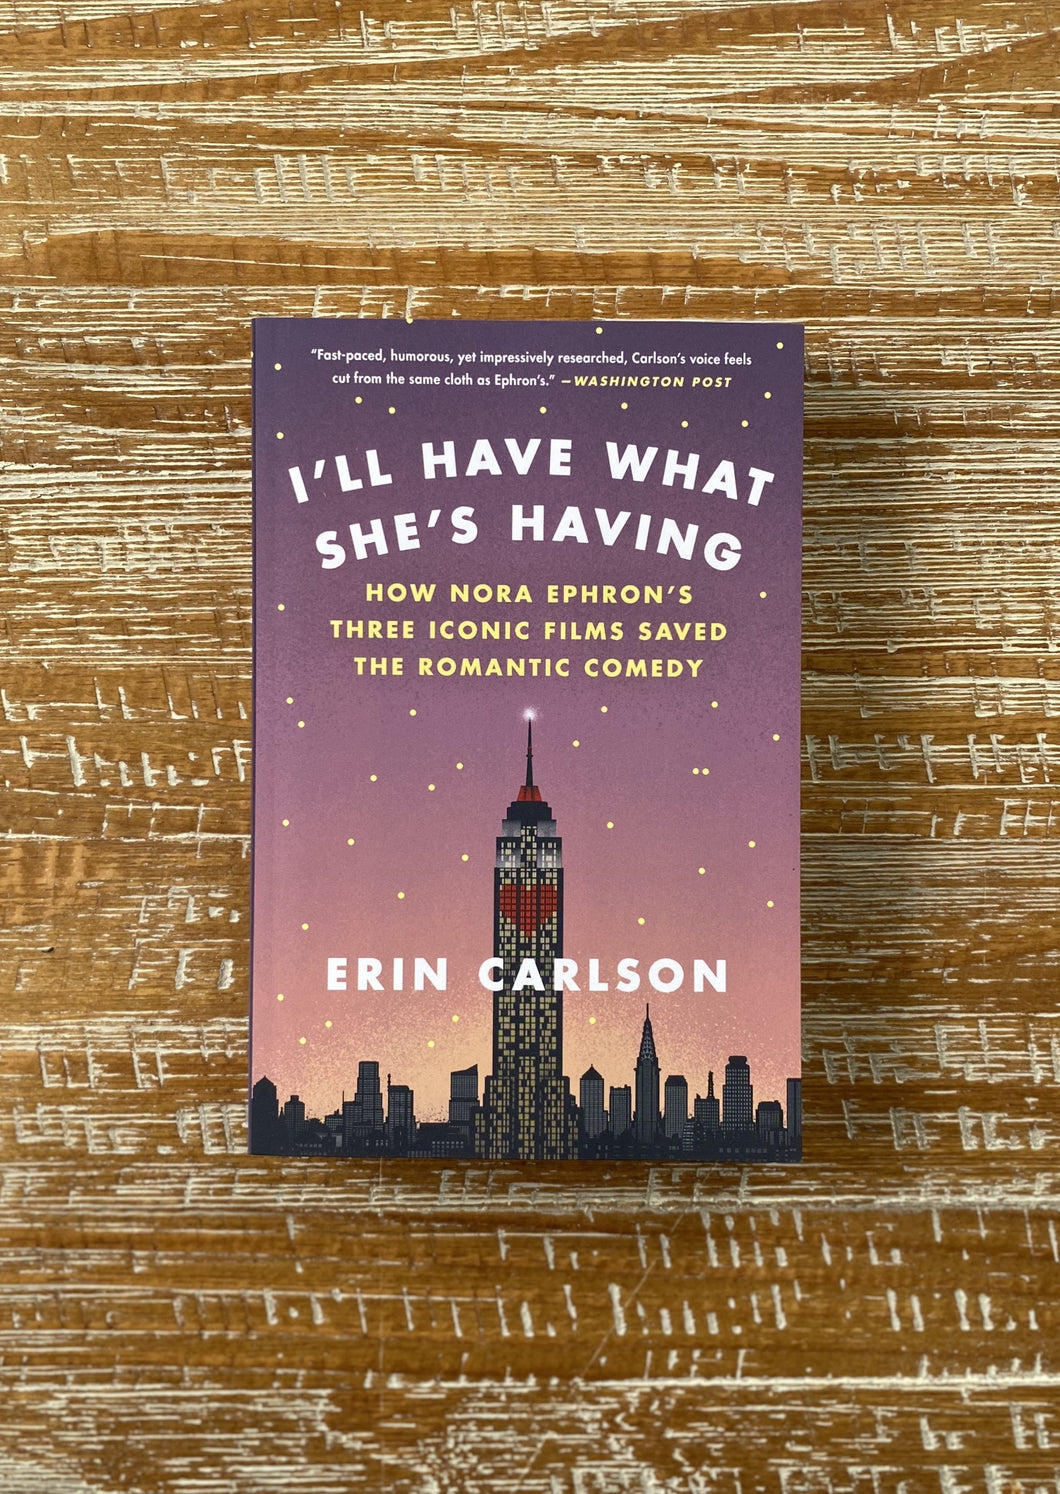 I'll Have What She's Having (How Nora Ephron's Three Iconic Films Saved the Romantic Comedy) by Erin Carlson